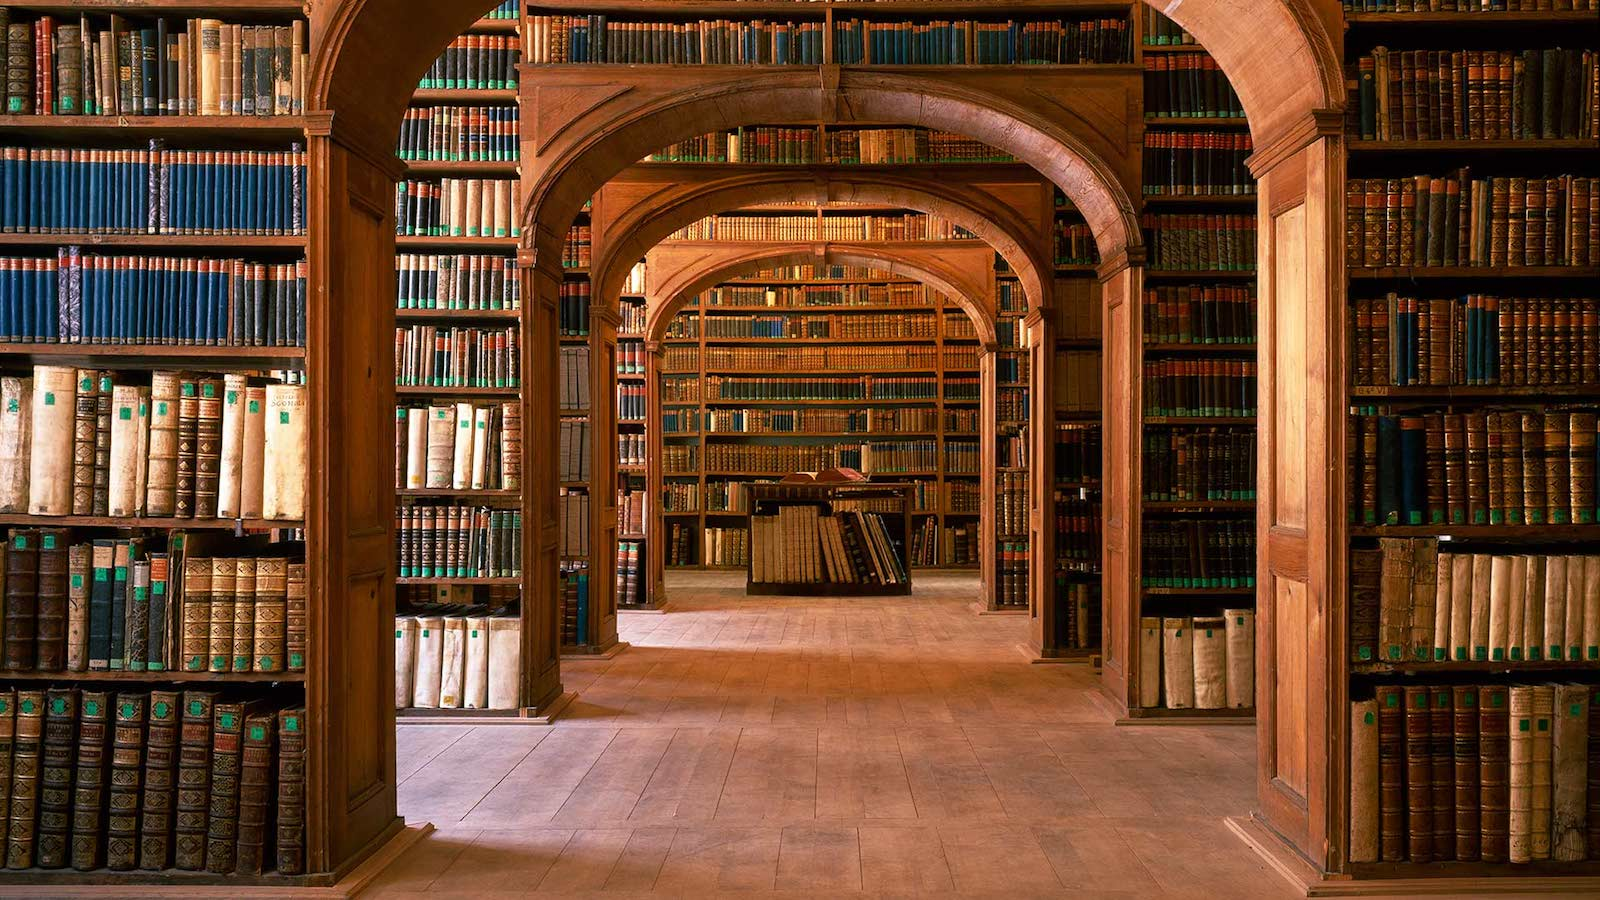 library-wallpaper-50371-52062-hd-wallpapers